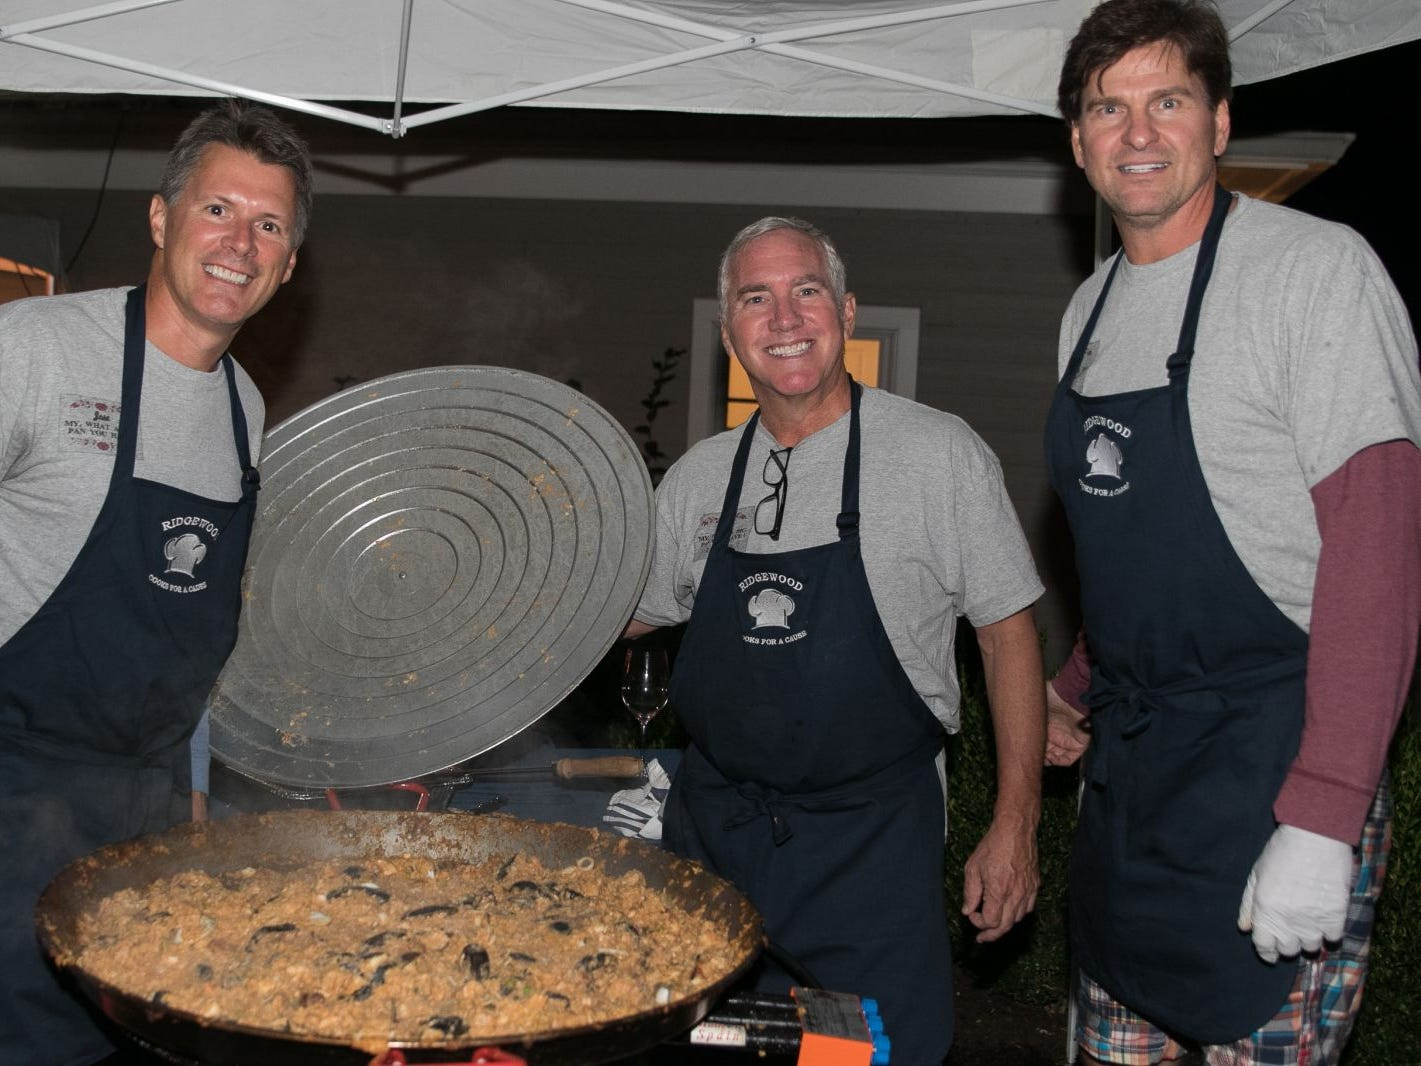 "Joe Scanlon, David Colin, Jeff Saladucha. Pam Chmiel, The Tres Amigos Paella Company (David Colin, Joe Scanlon and Jeff Saladucha), The Jims (Jim Gibney and Jim Toscano), George Nikias, Ron Oscher and Neil Murphy held Ridgewood Cooks for a Cause to benefit ""Cookies For Kids Cancer"" (Childhood Cancer Research) and YCS (Youth Consultaion Services) charities. 09/08/2018"